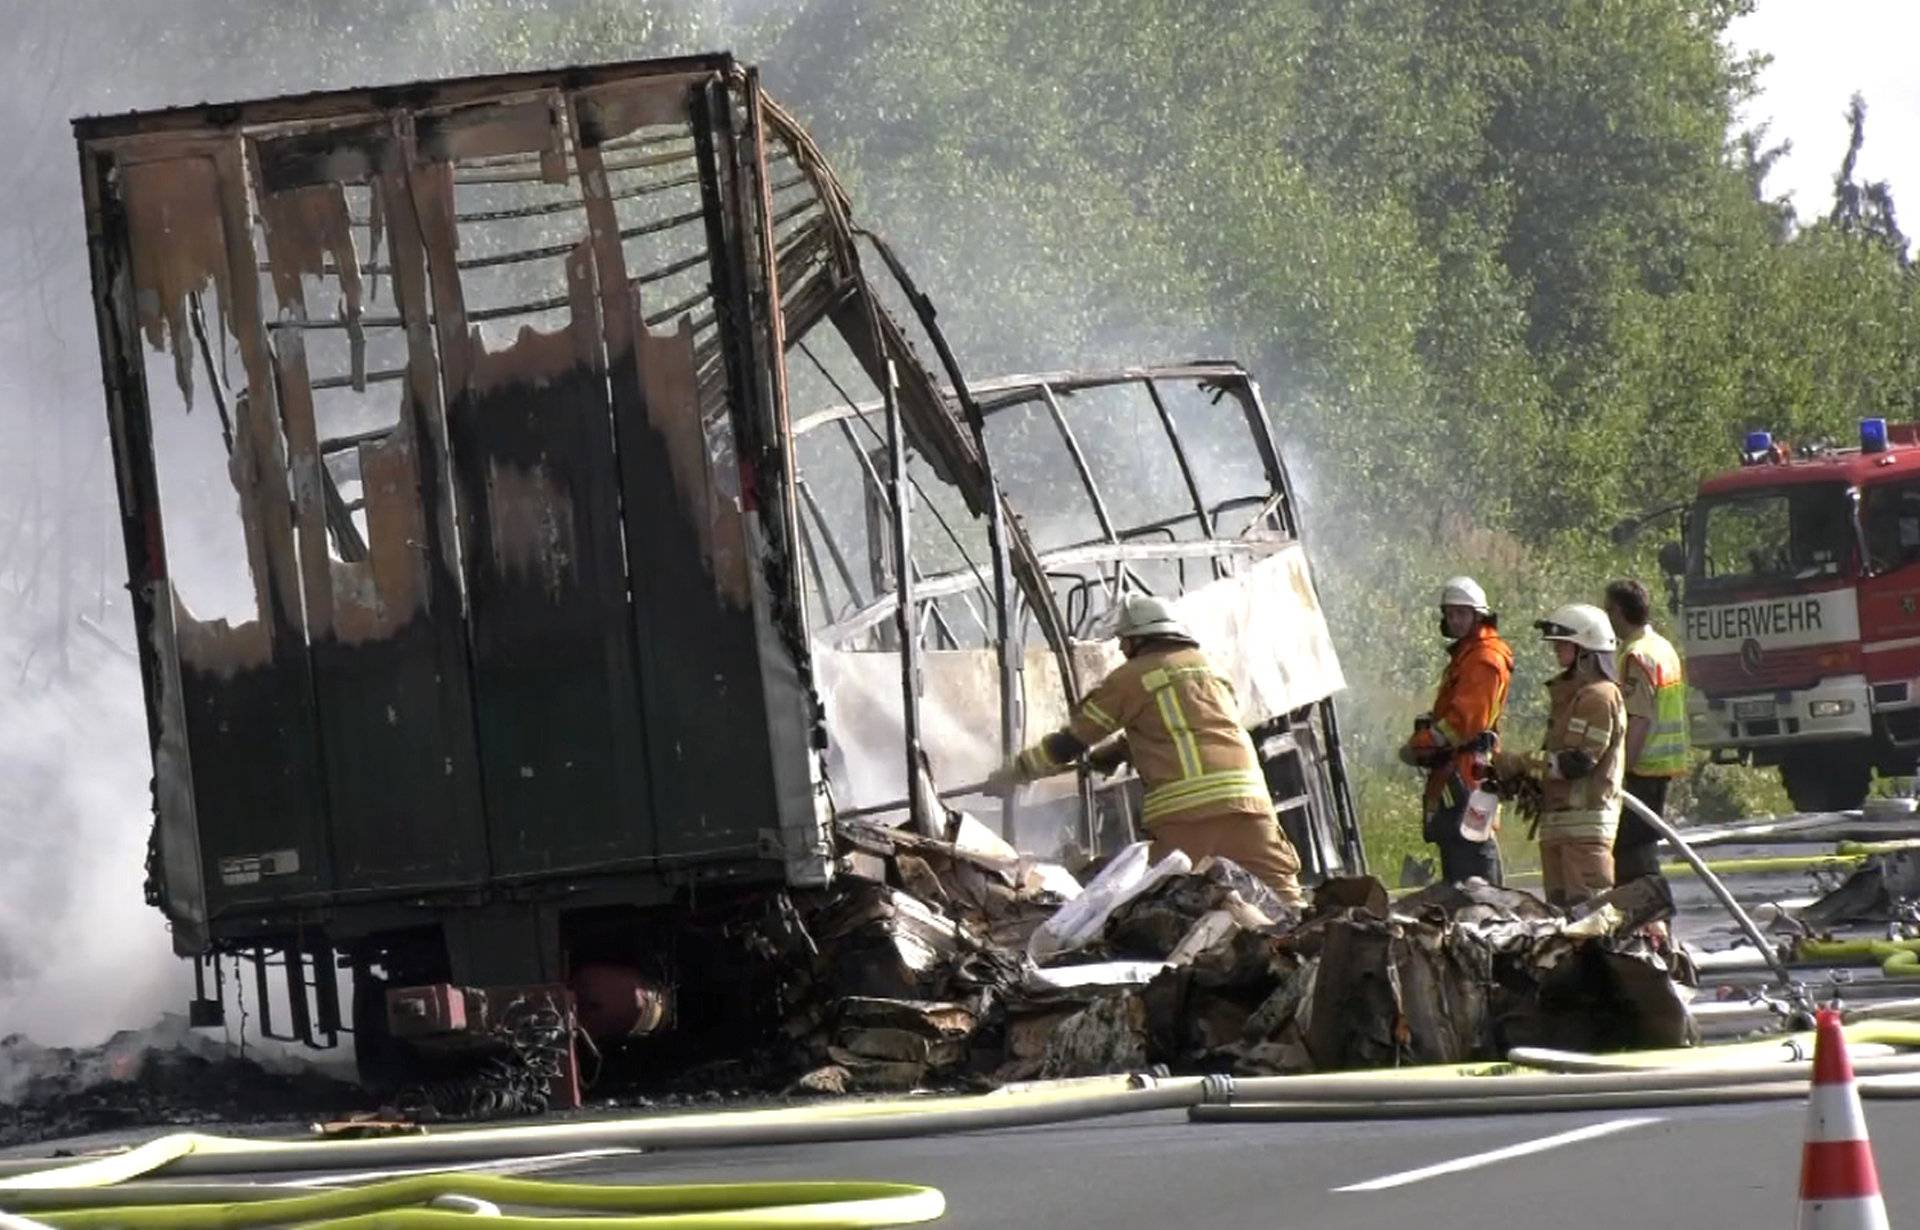 Firefighters walk at the site where a coach burst into flames after colliding with a lorry on a motorway near Muenchberg